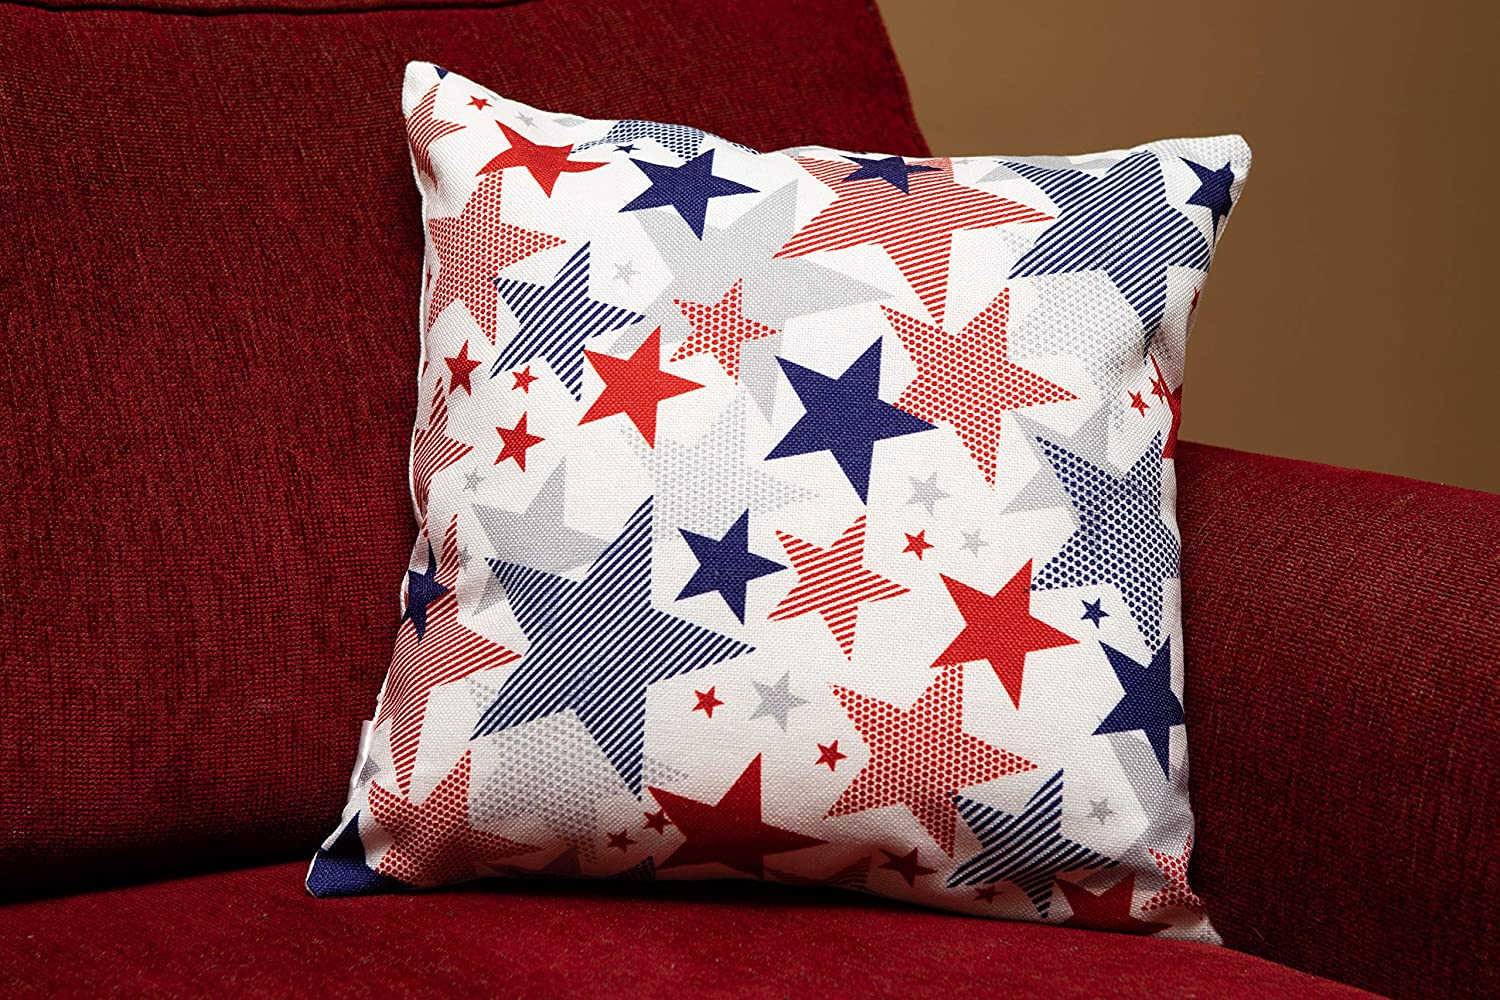 Image 2 of Holiday Pillow Covers, Set of 2